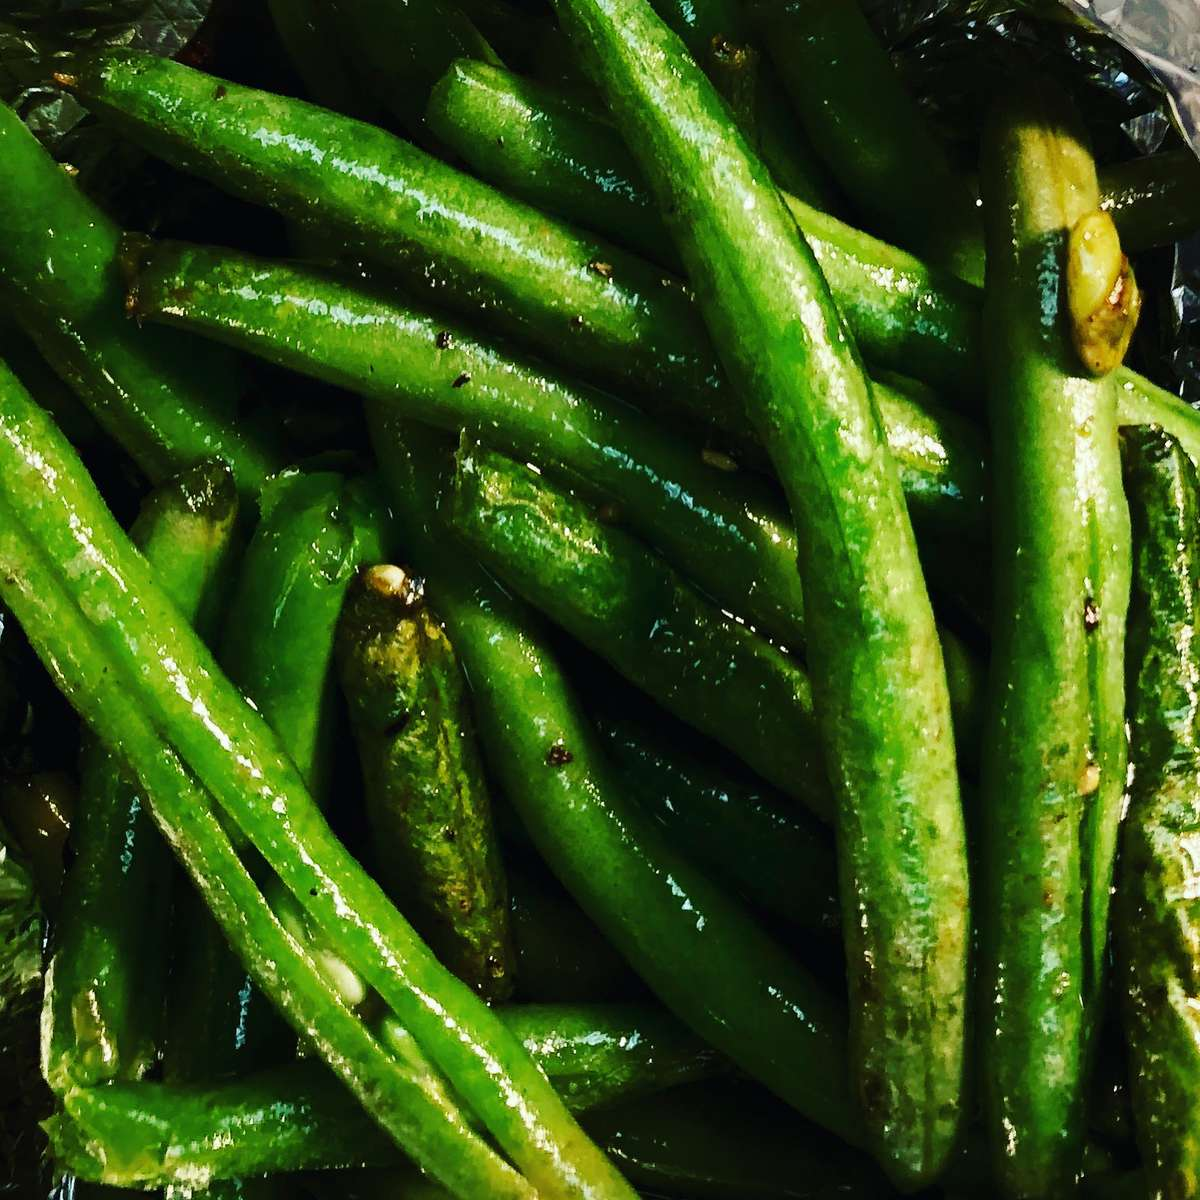 Green Beans with Roasted Garlic Chips